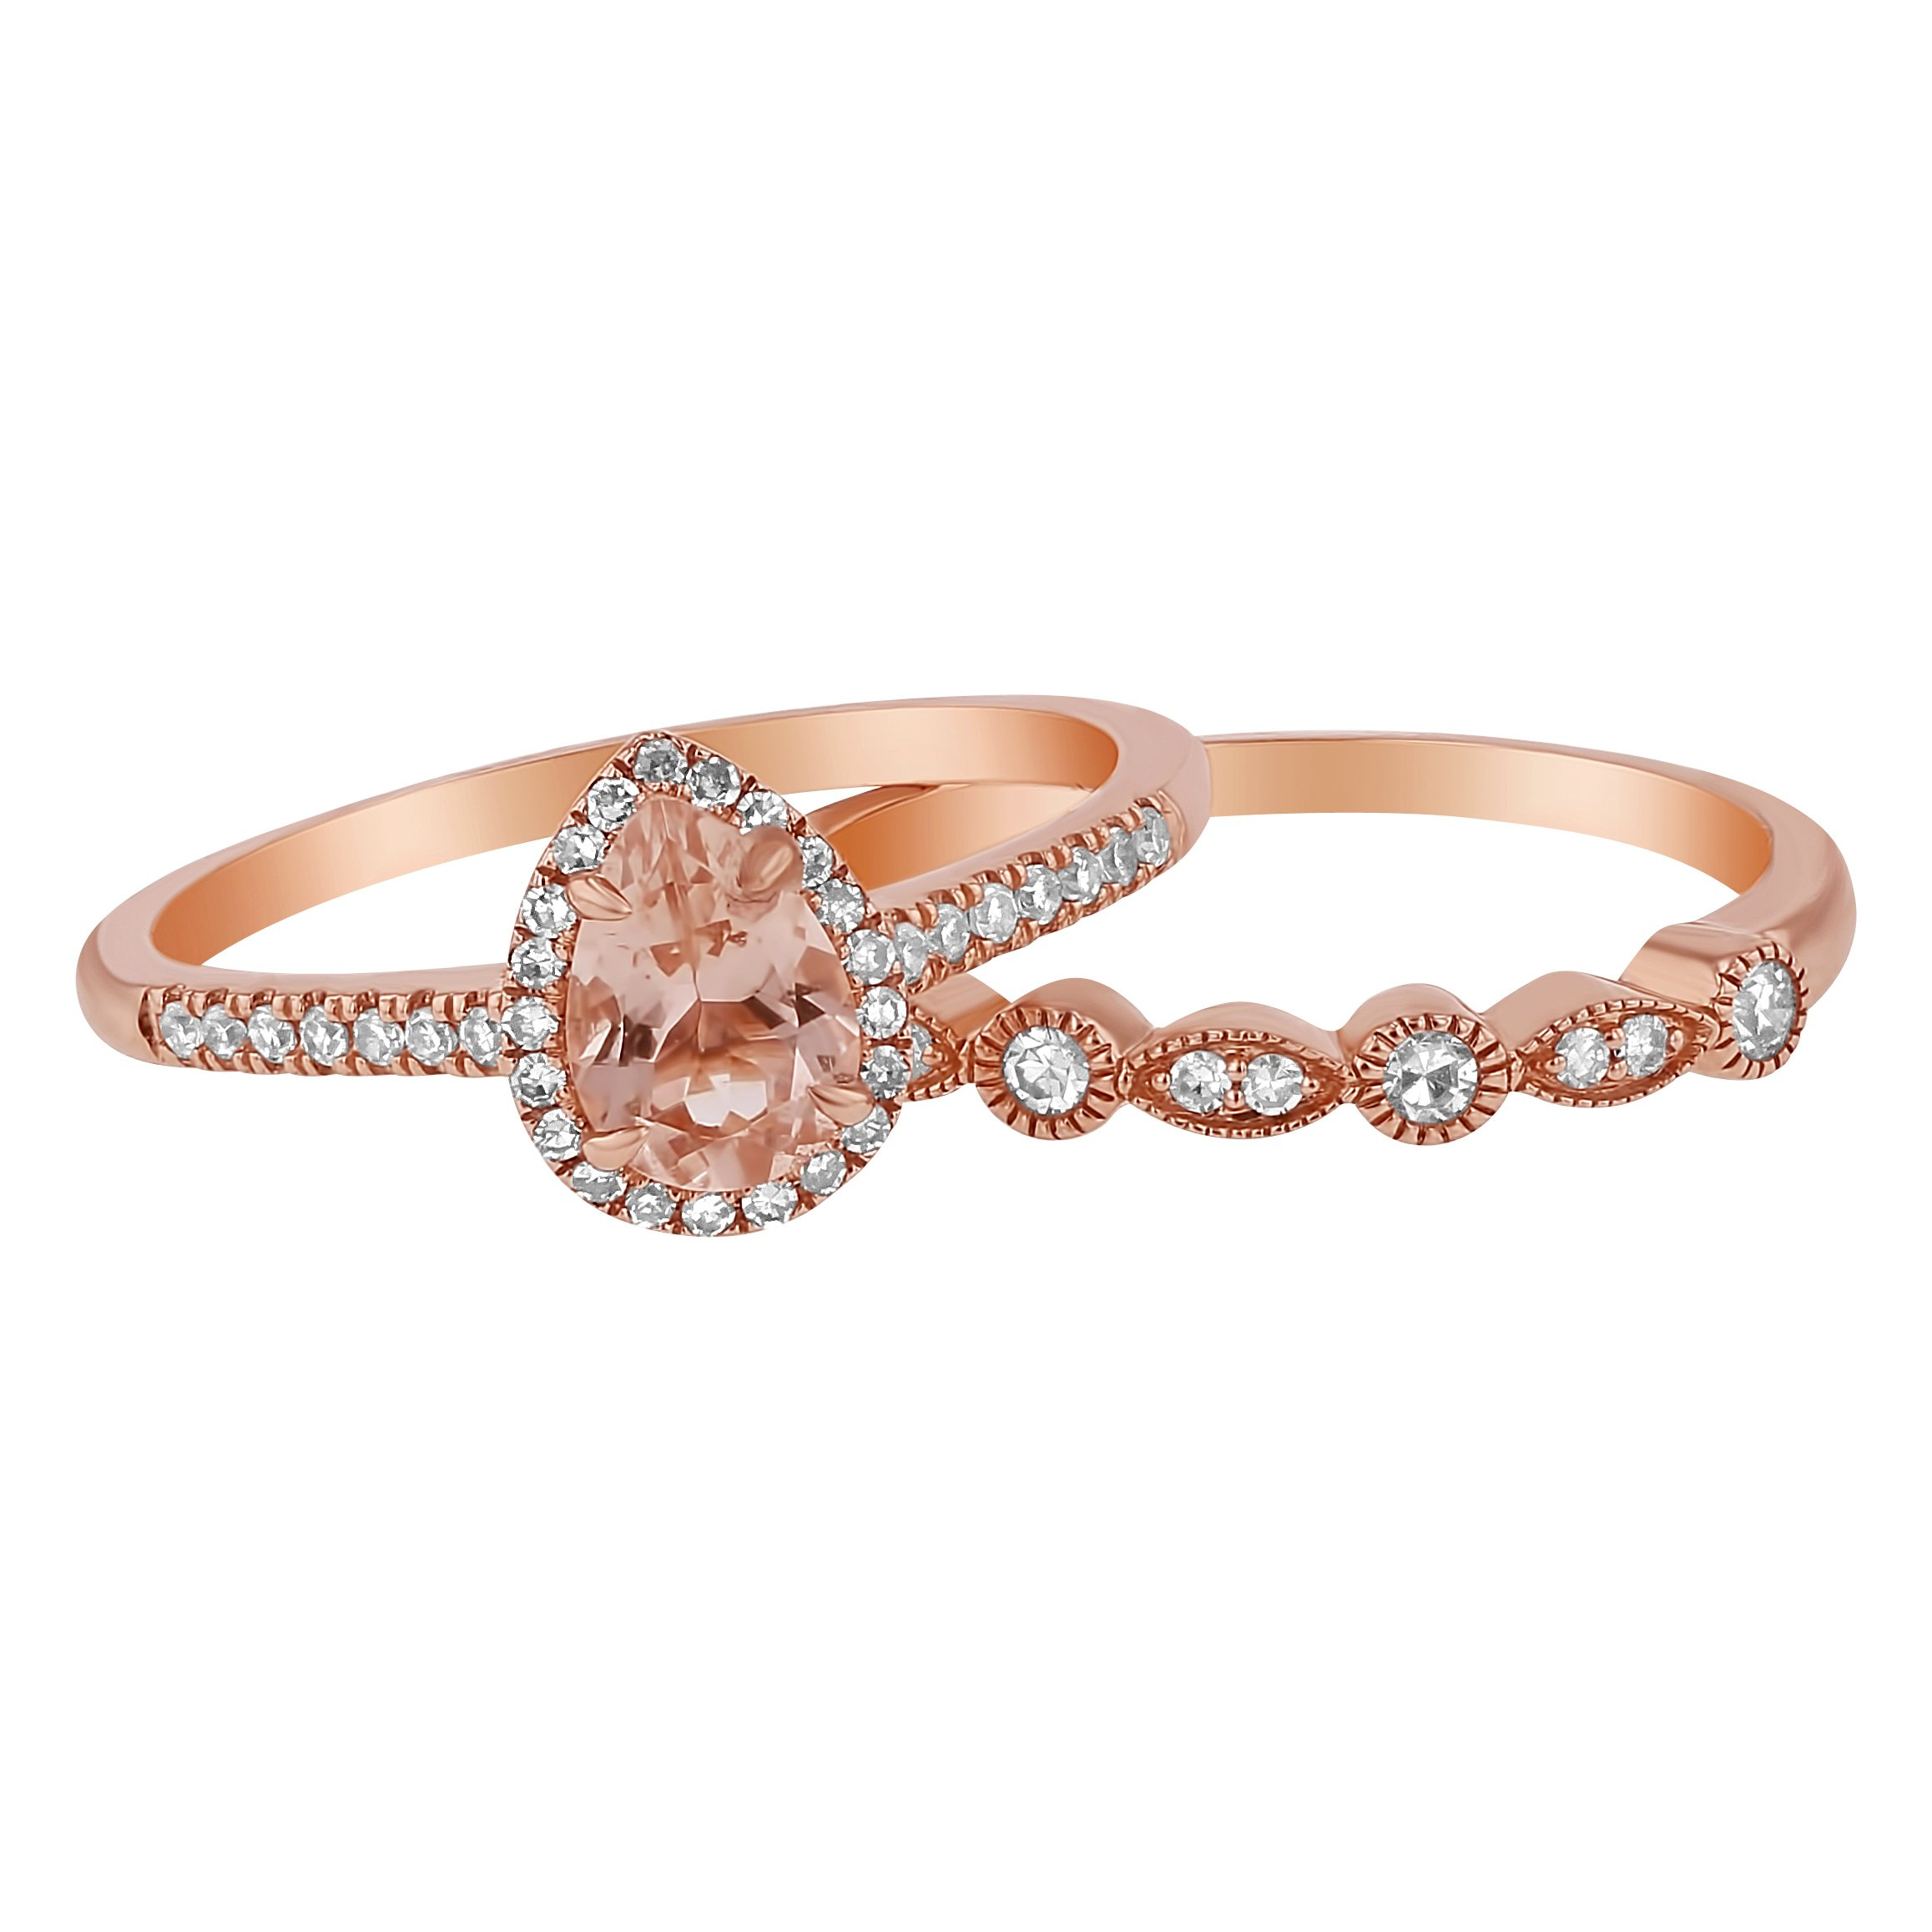 14k Rose Gold Pear Morganite and Diamond Halo Vintage Wedding Band Set (1/4 cttw, H-I Color, I1 Clarity) Size 5